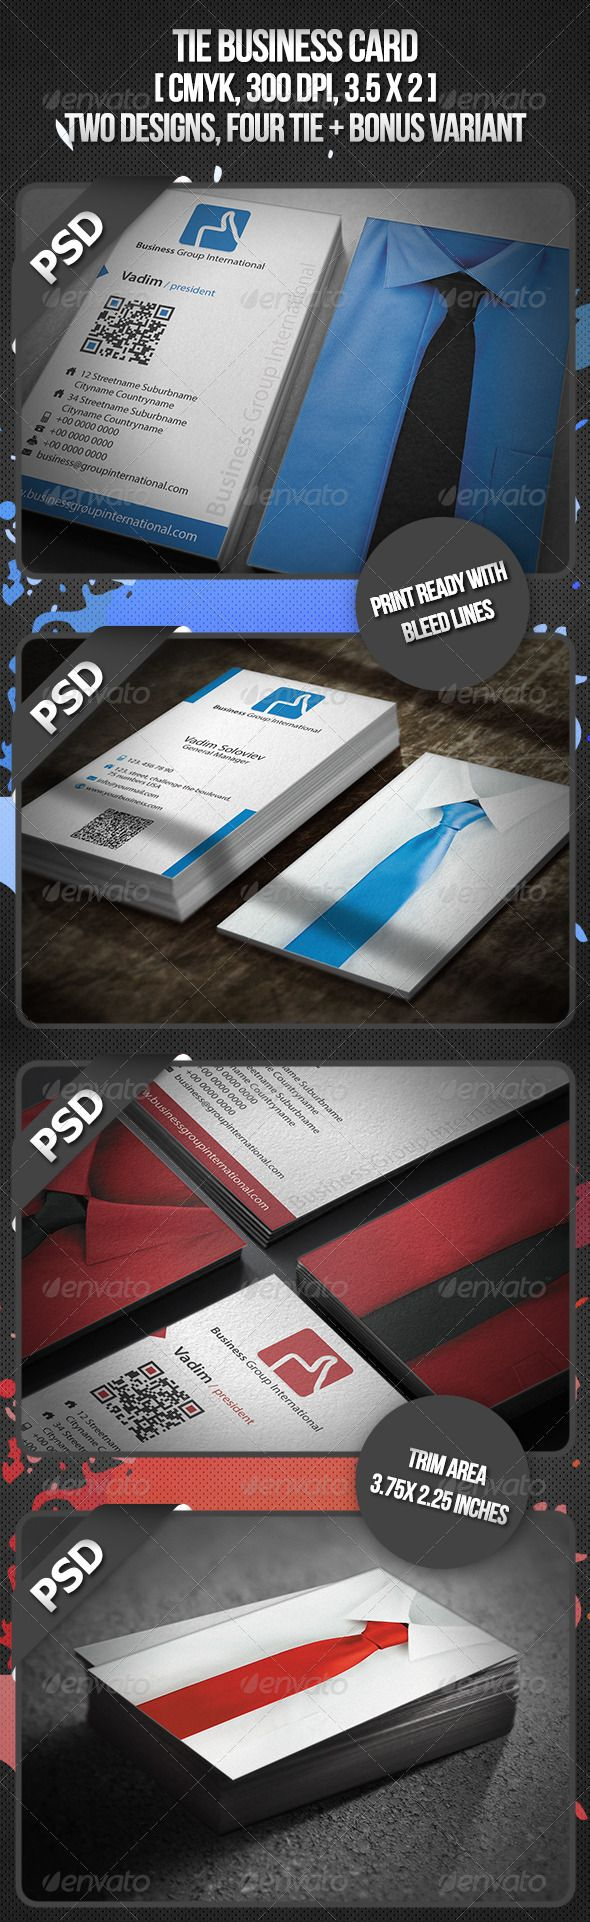 115 Best Busienss Cards Images On Pinterest Business Card Design